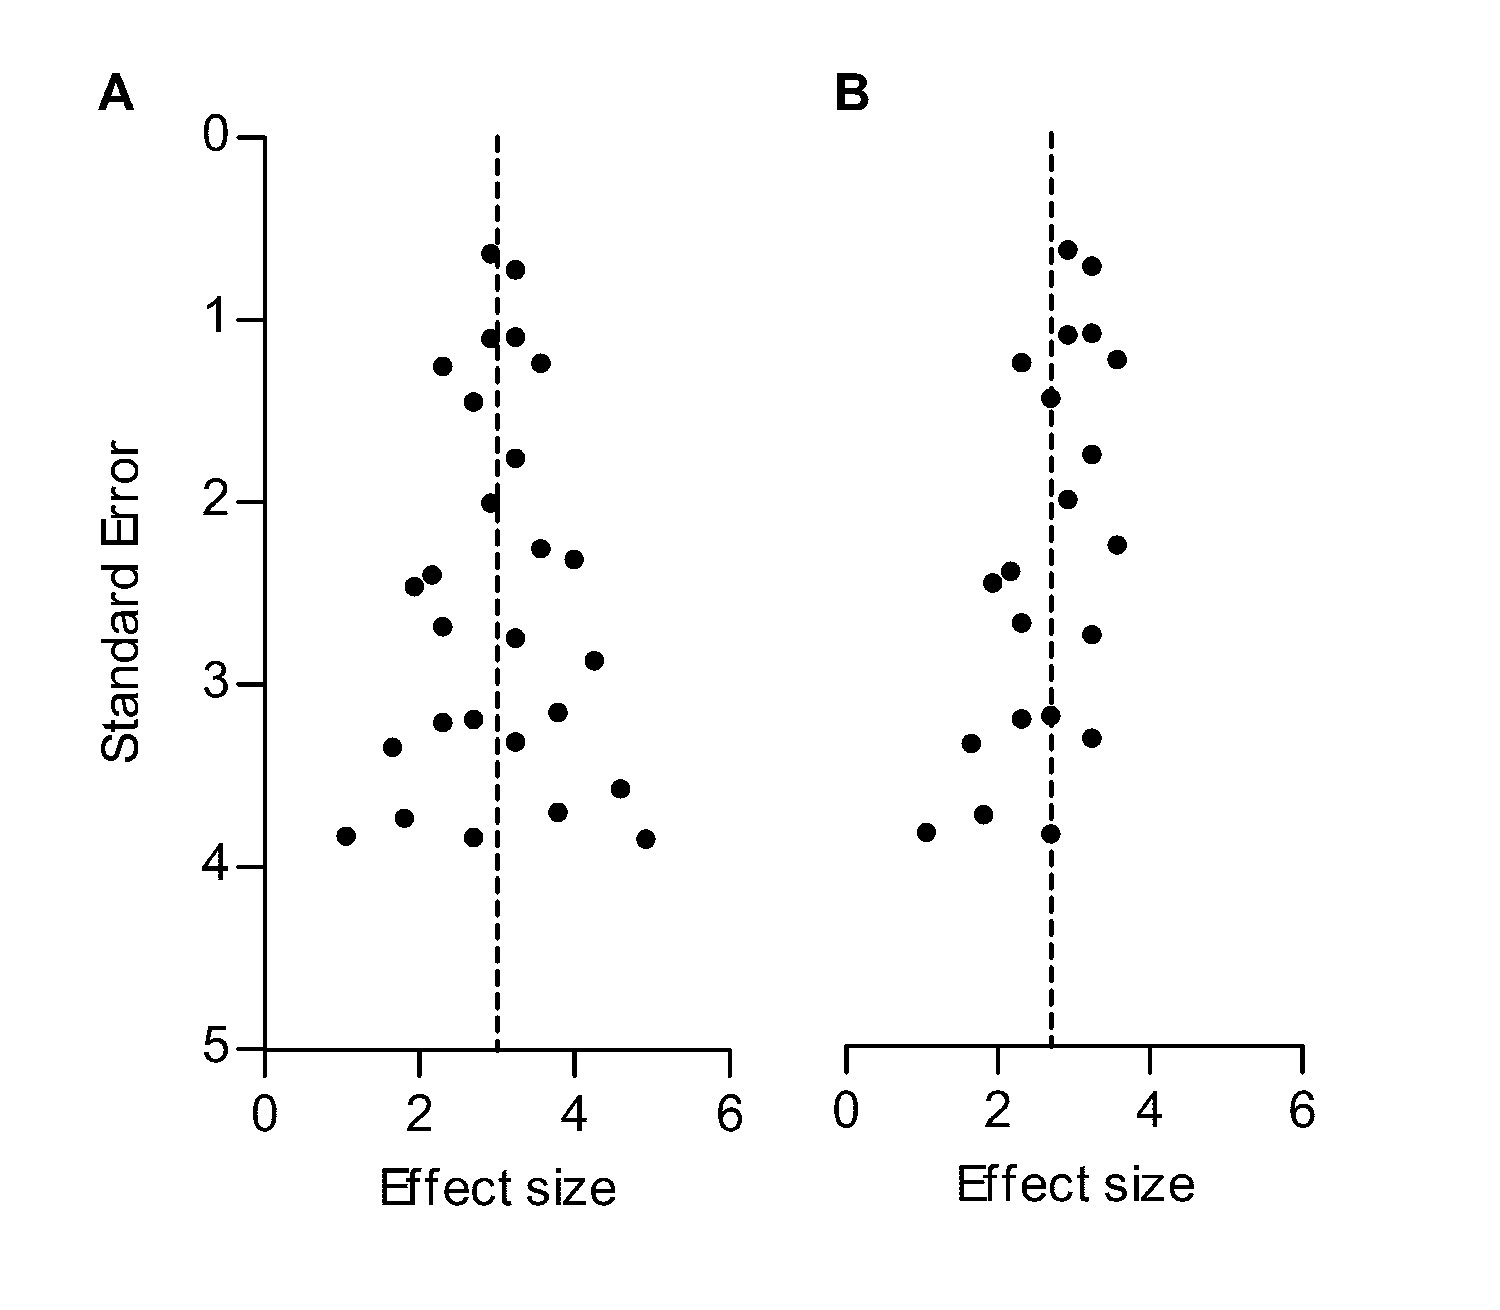 Standardized Mean Differences Cause Funnel Plot Distortion In Publication Bias Assessments